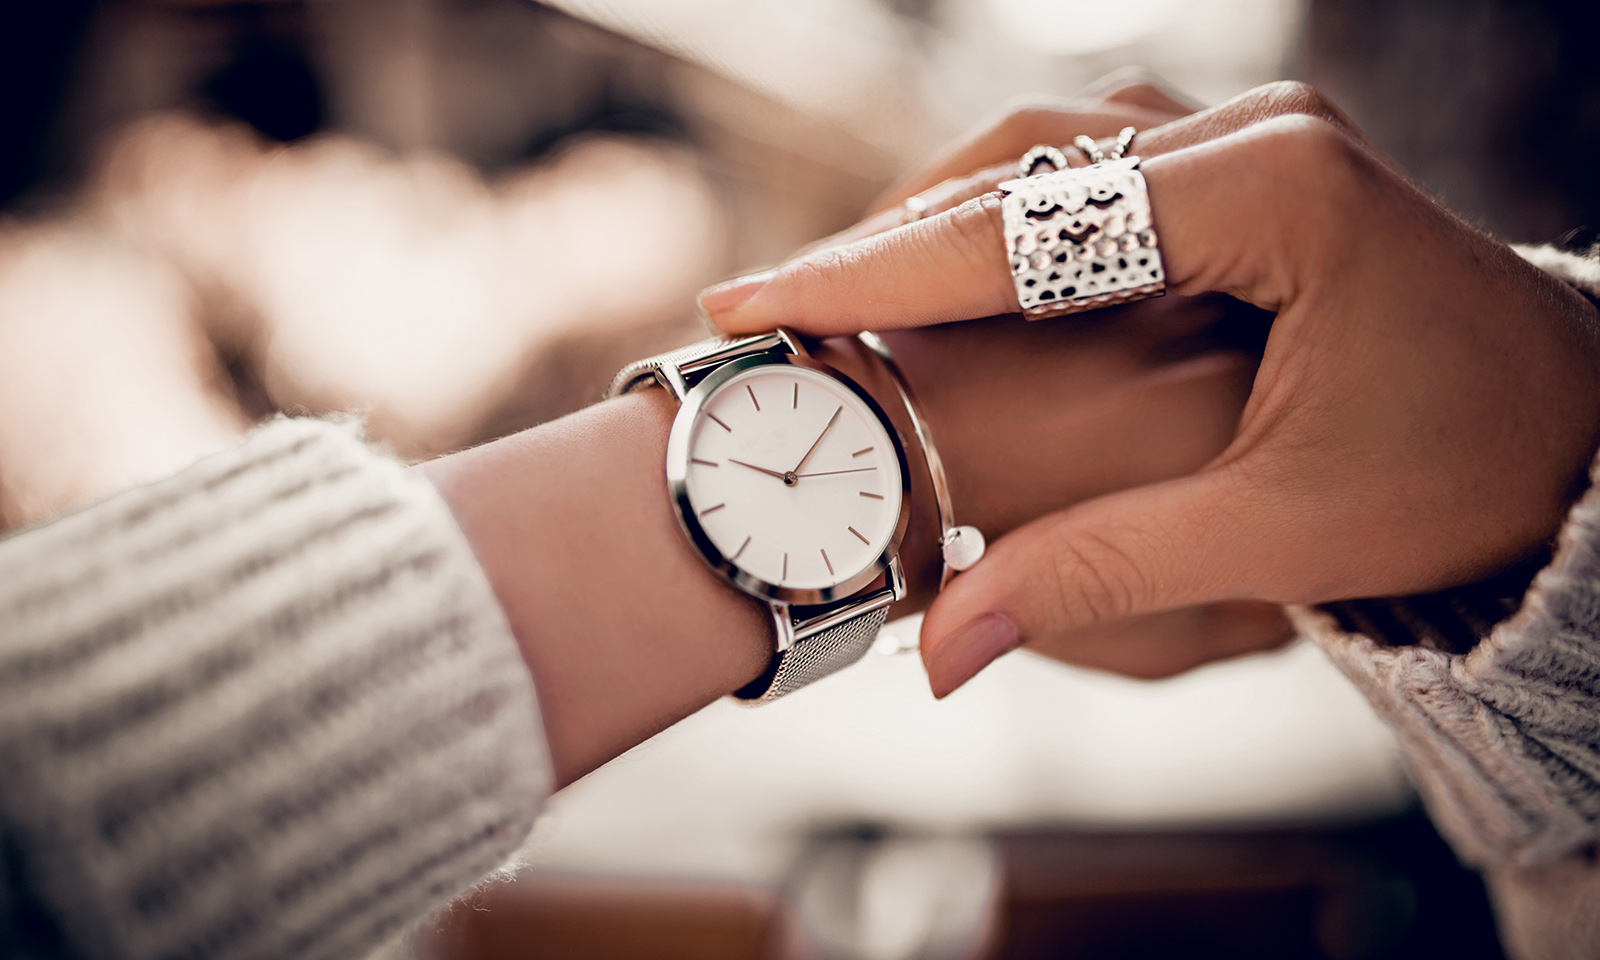 platinum-vs-white-gold-jewelry-woman-in-watch-and-ring-main-image